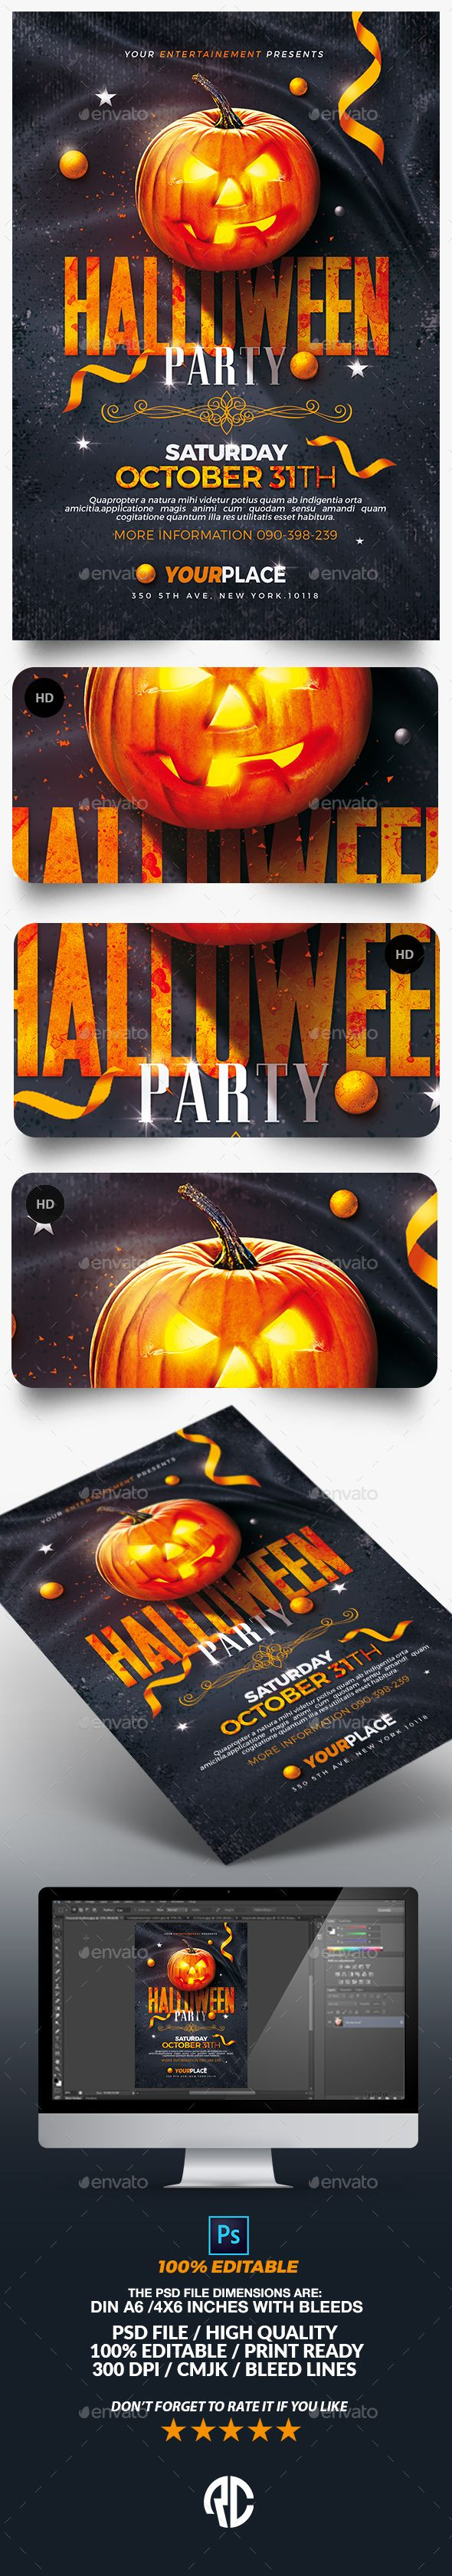 414 best Halloween Flyer Template images on Pinterest